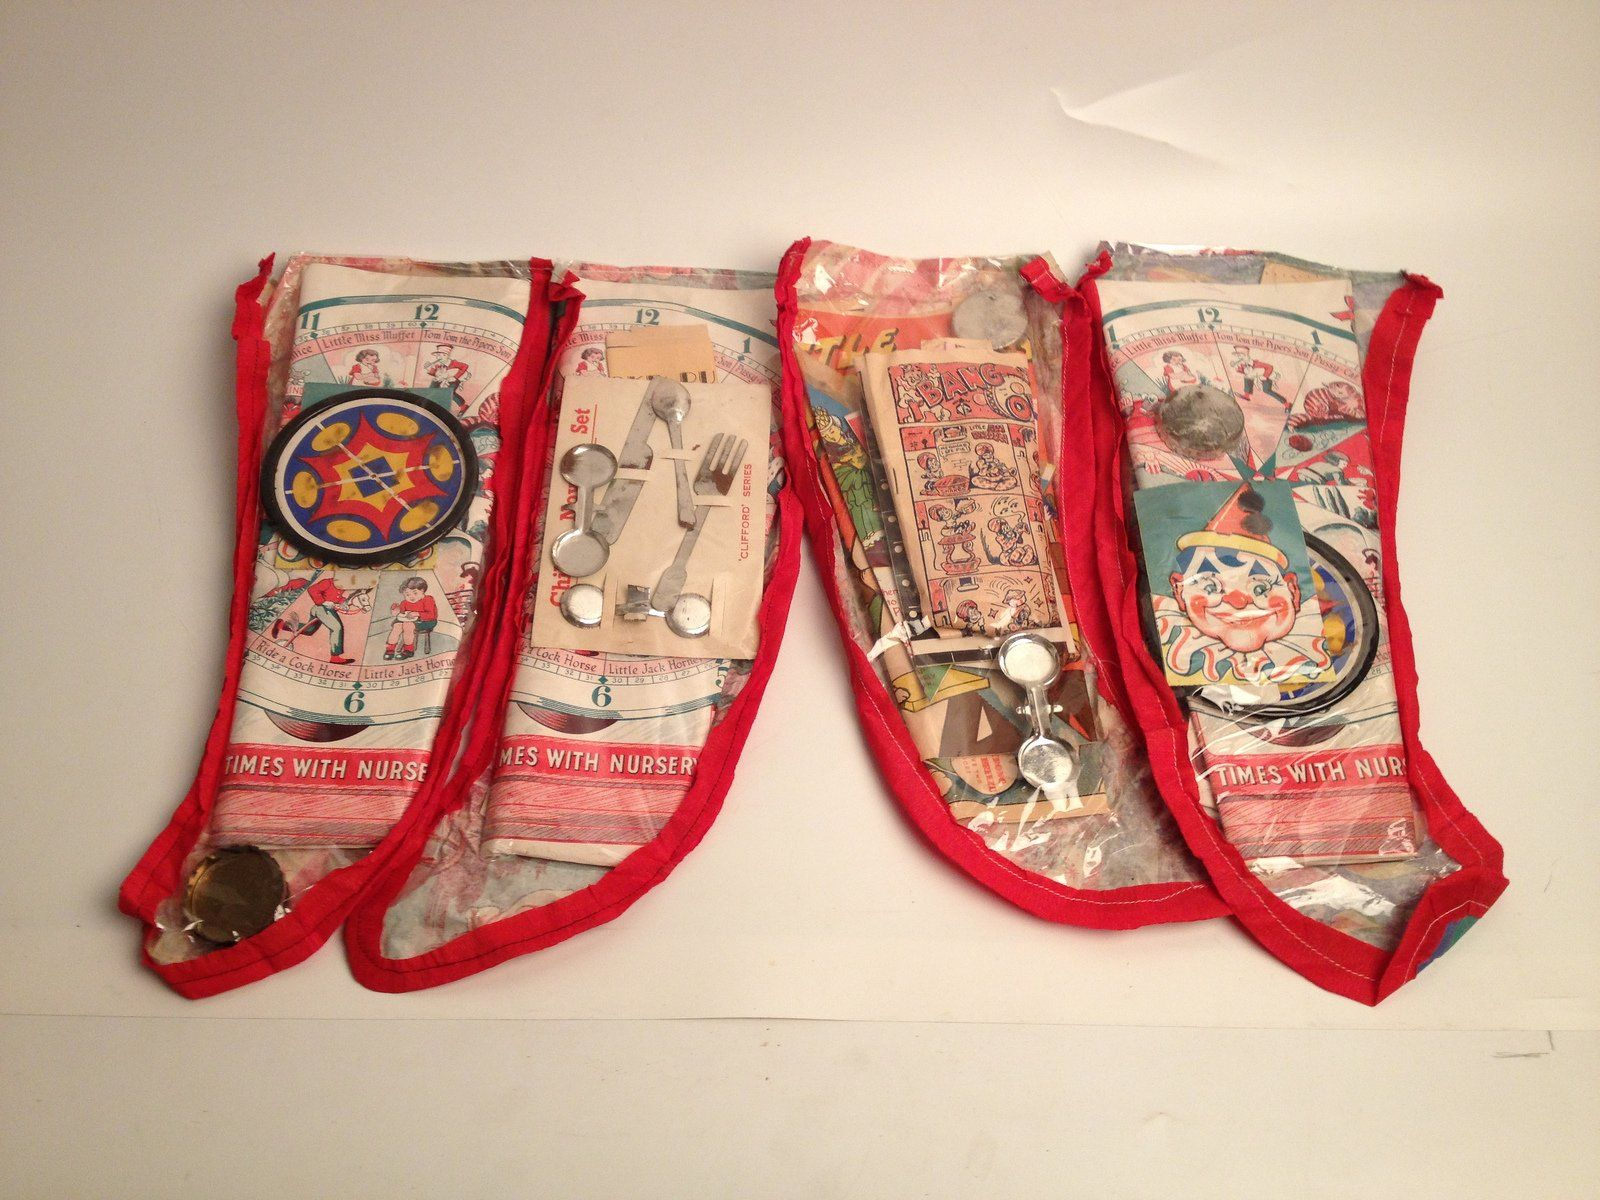 Christmas Stockings -Not ornaments, but definitely vintage!